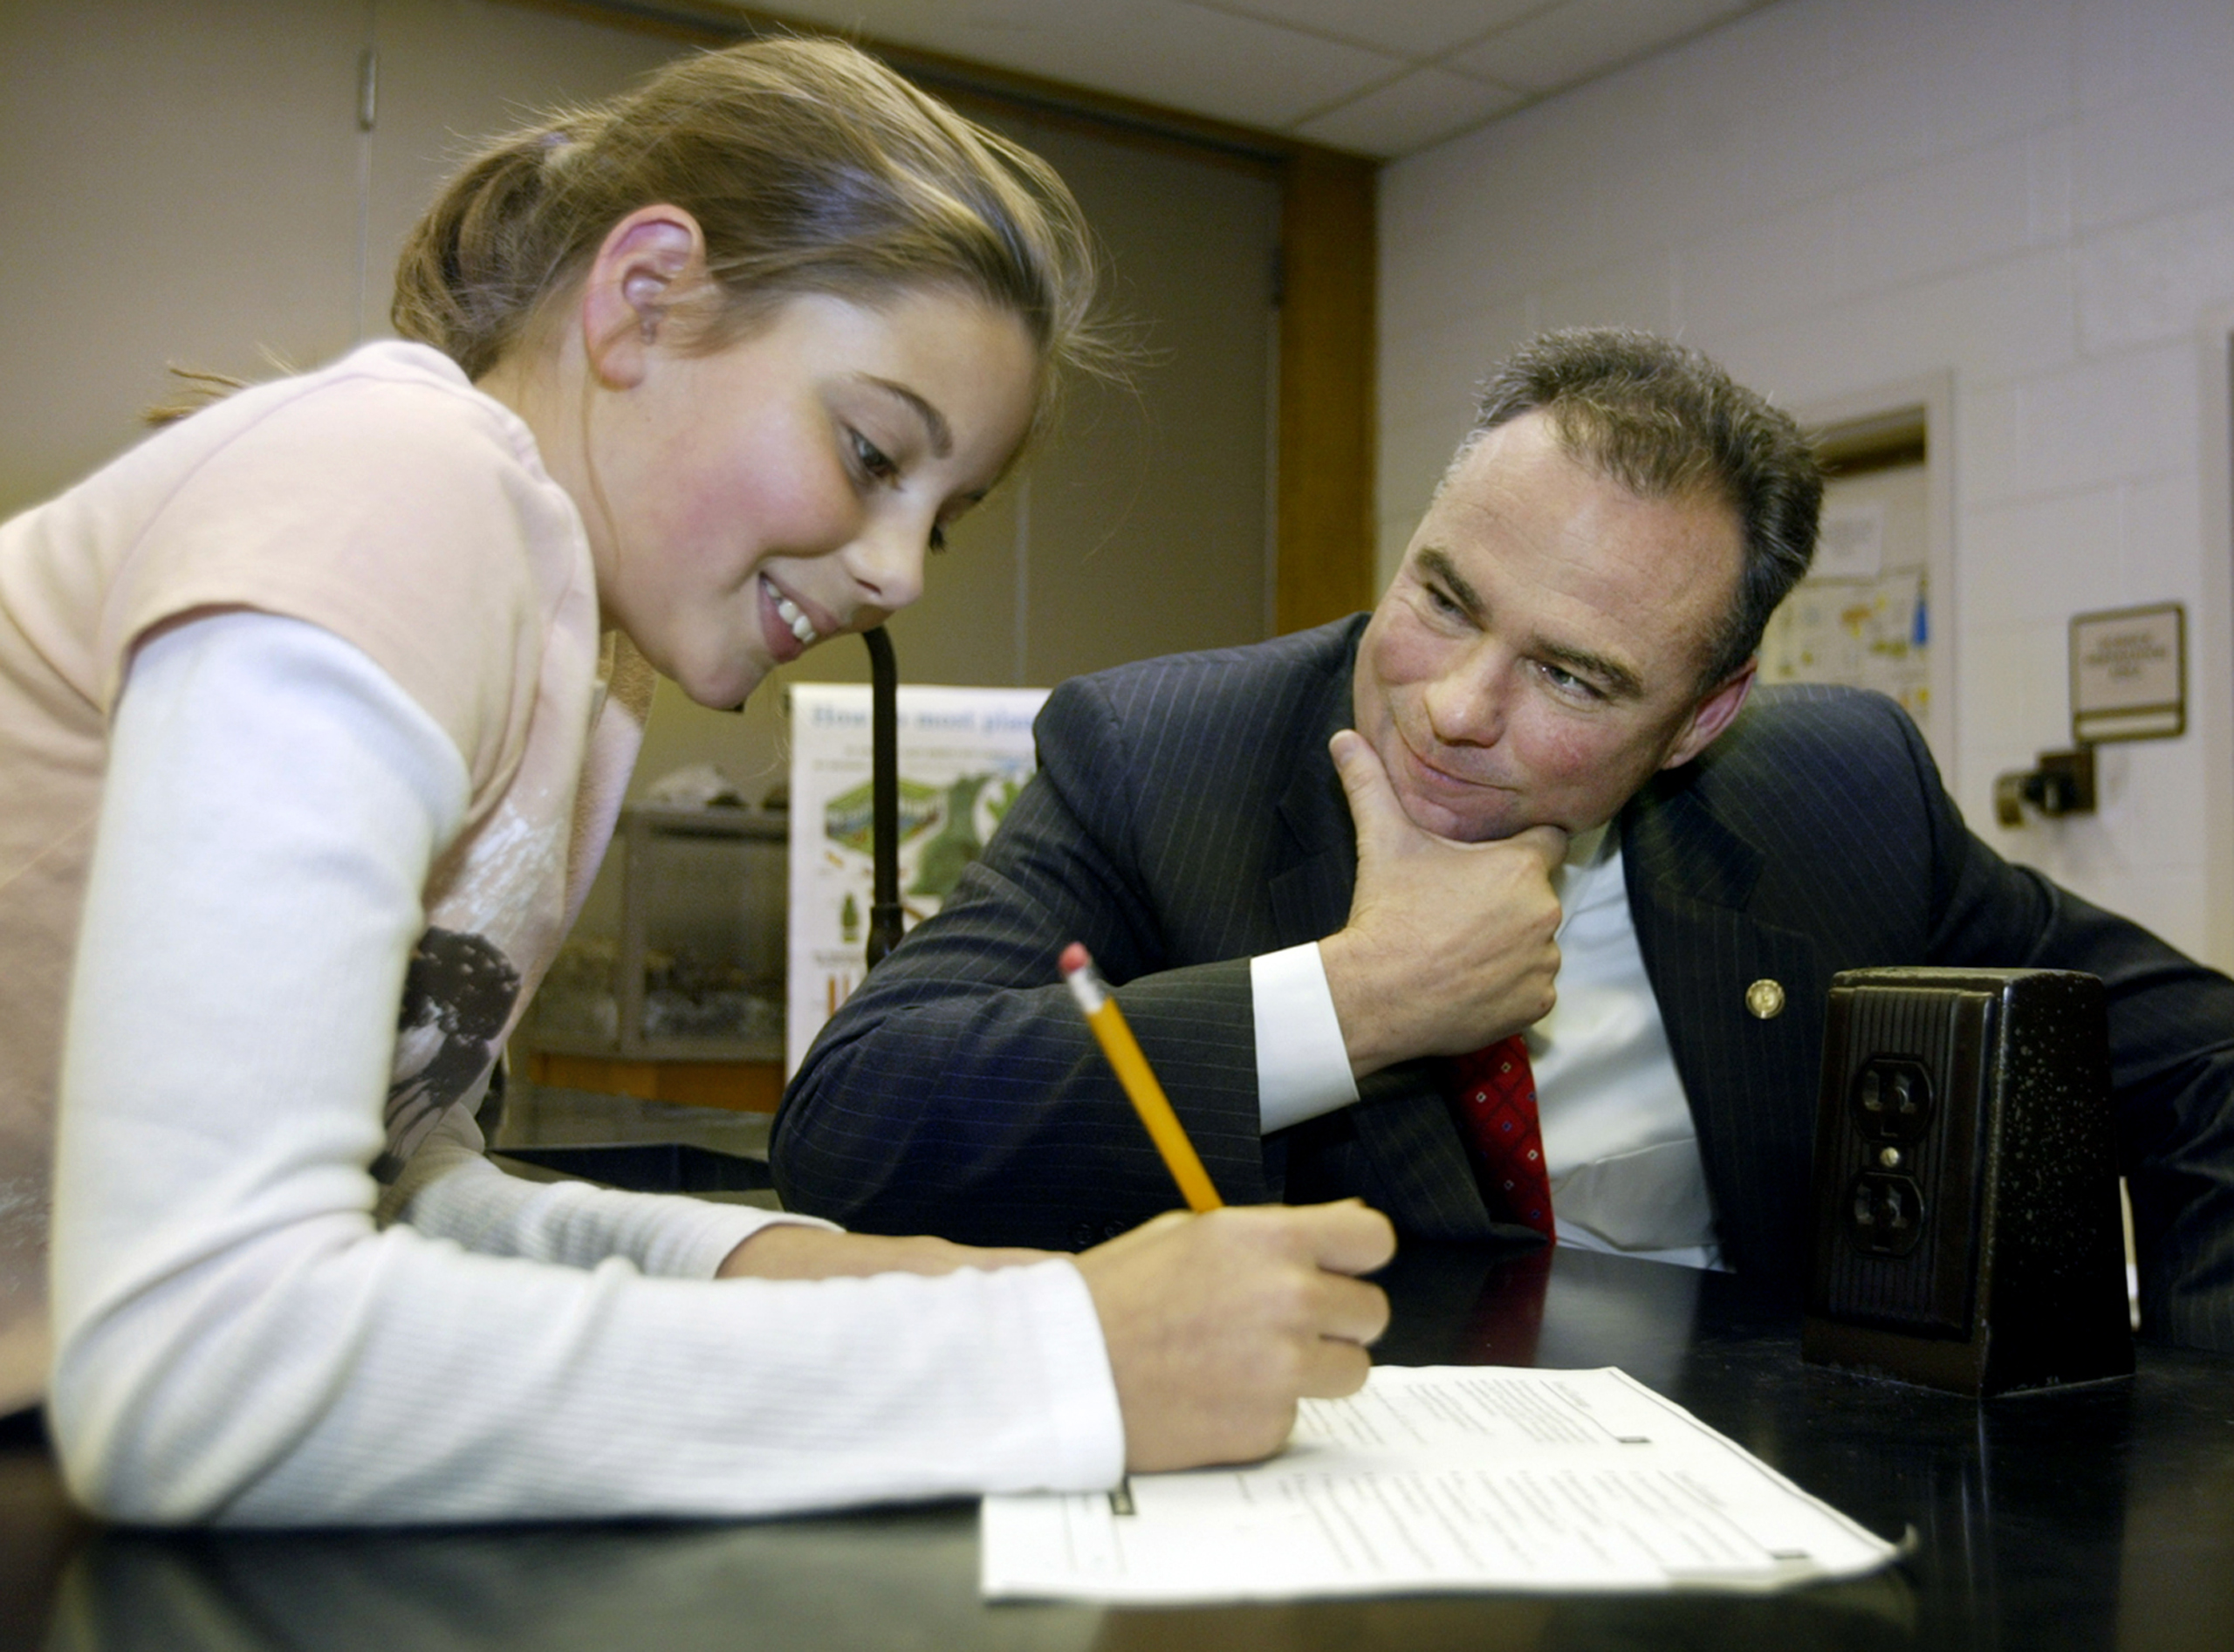 Virginia Gov. Tim Kaine and Aylor Middle School student Ryan Magalis, 11, left, work together on a word game in a gifted resource enlightment study hall at the school in Stephens City, Va. on Oct. 17, 2006.